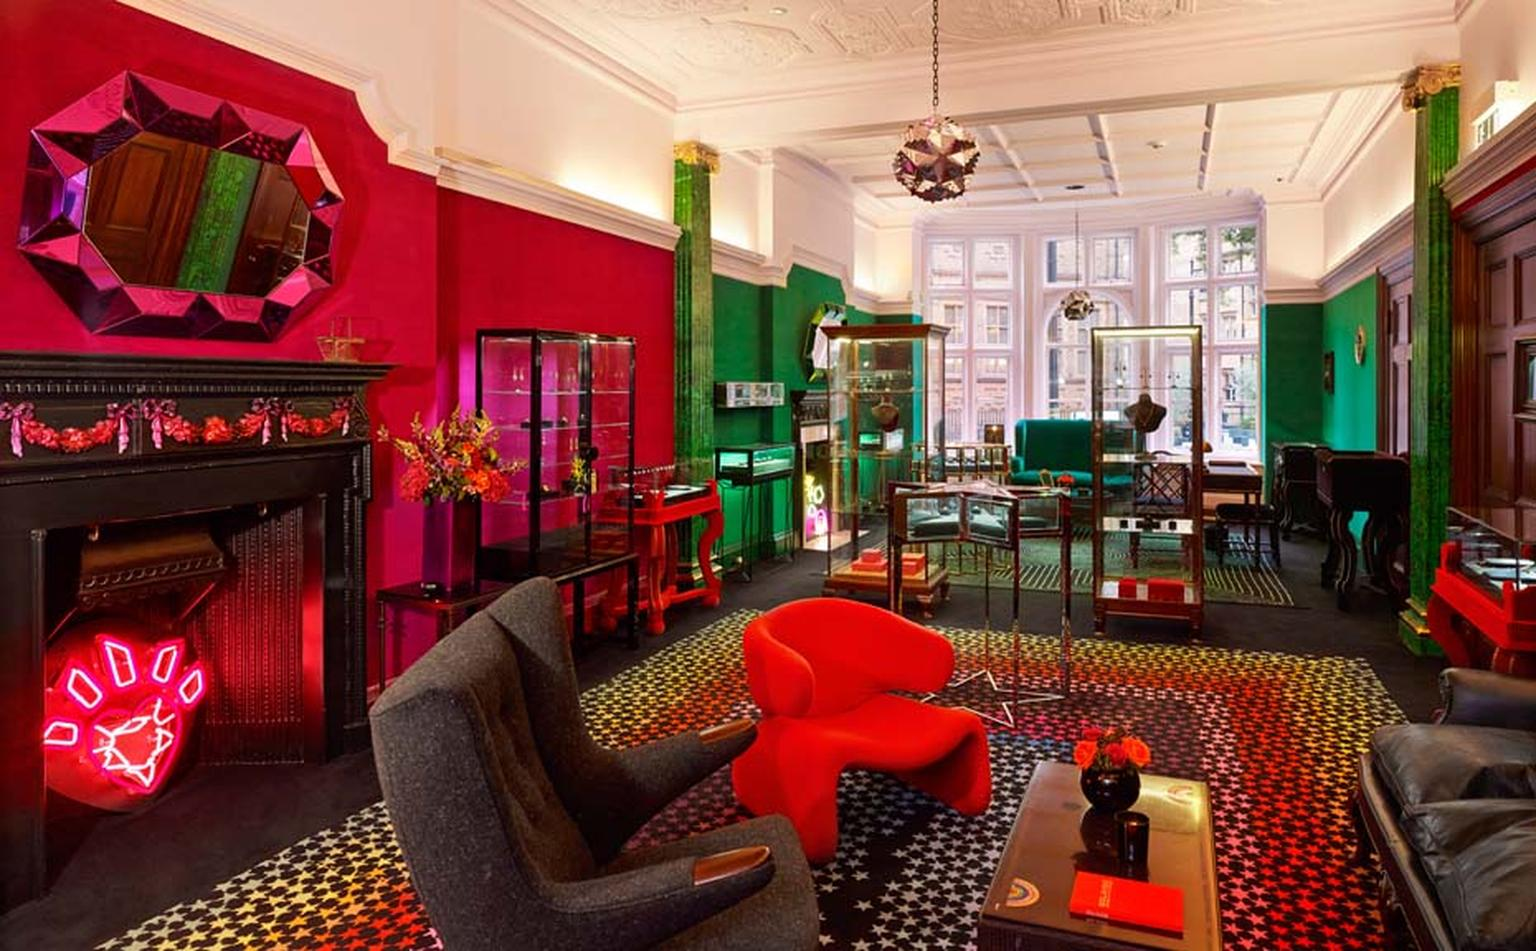 Opened in 2013, Solange Azagury-Partridge's luxurious townhouse on Mount Street in Mayfair, London, is as colourfully eclectic as her designs.